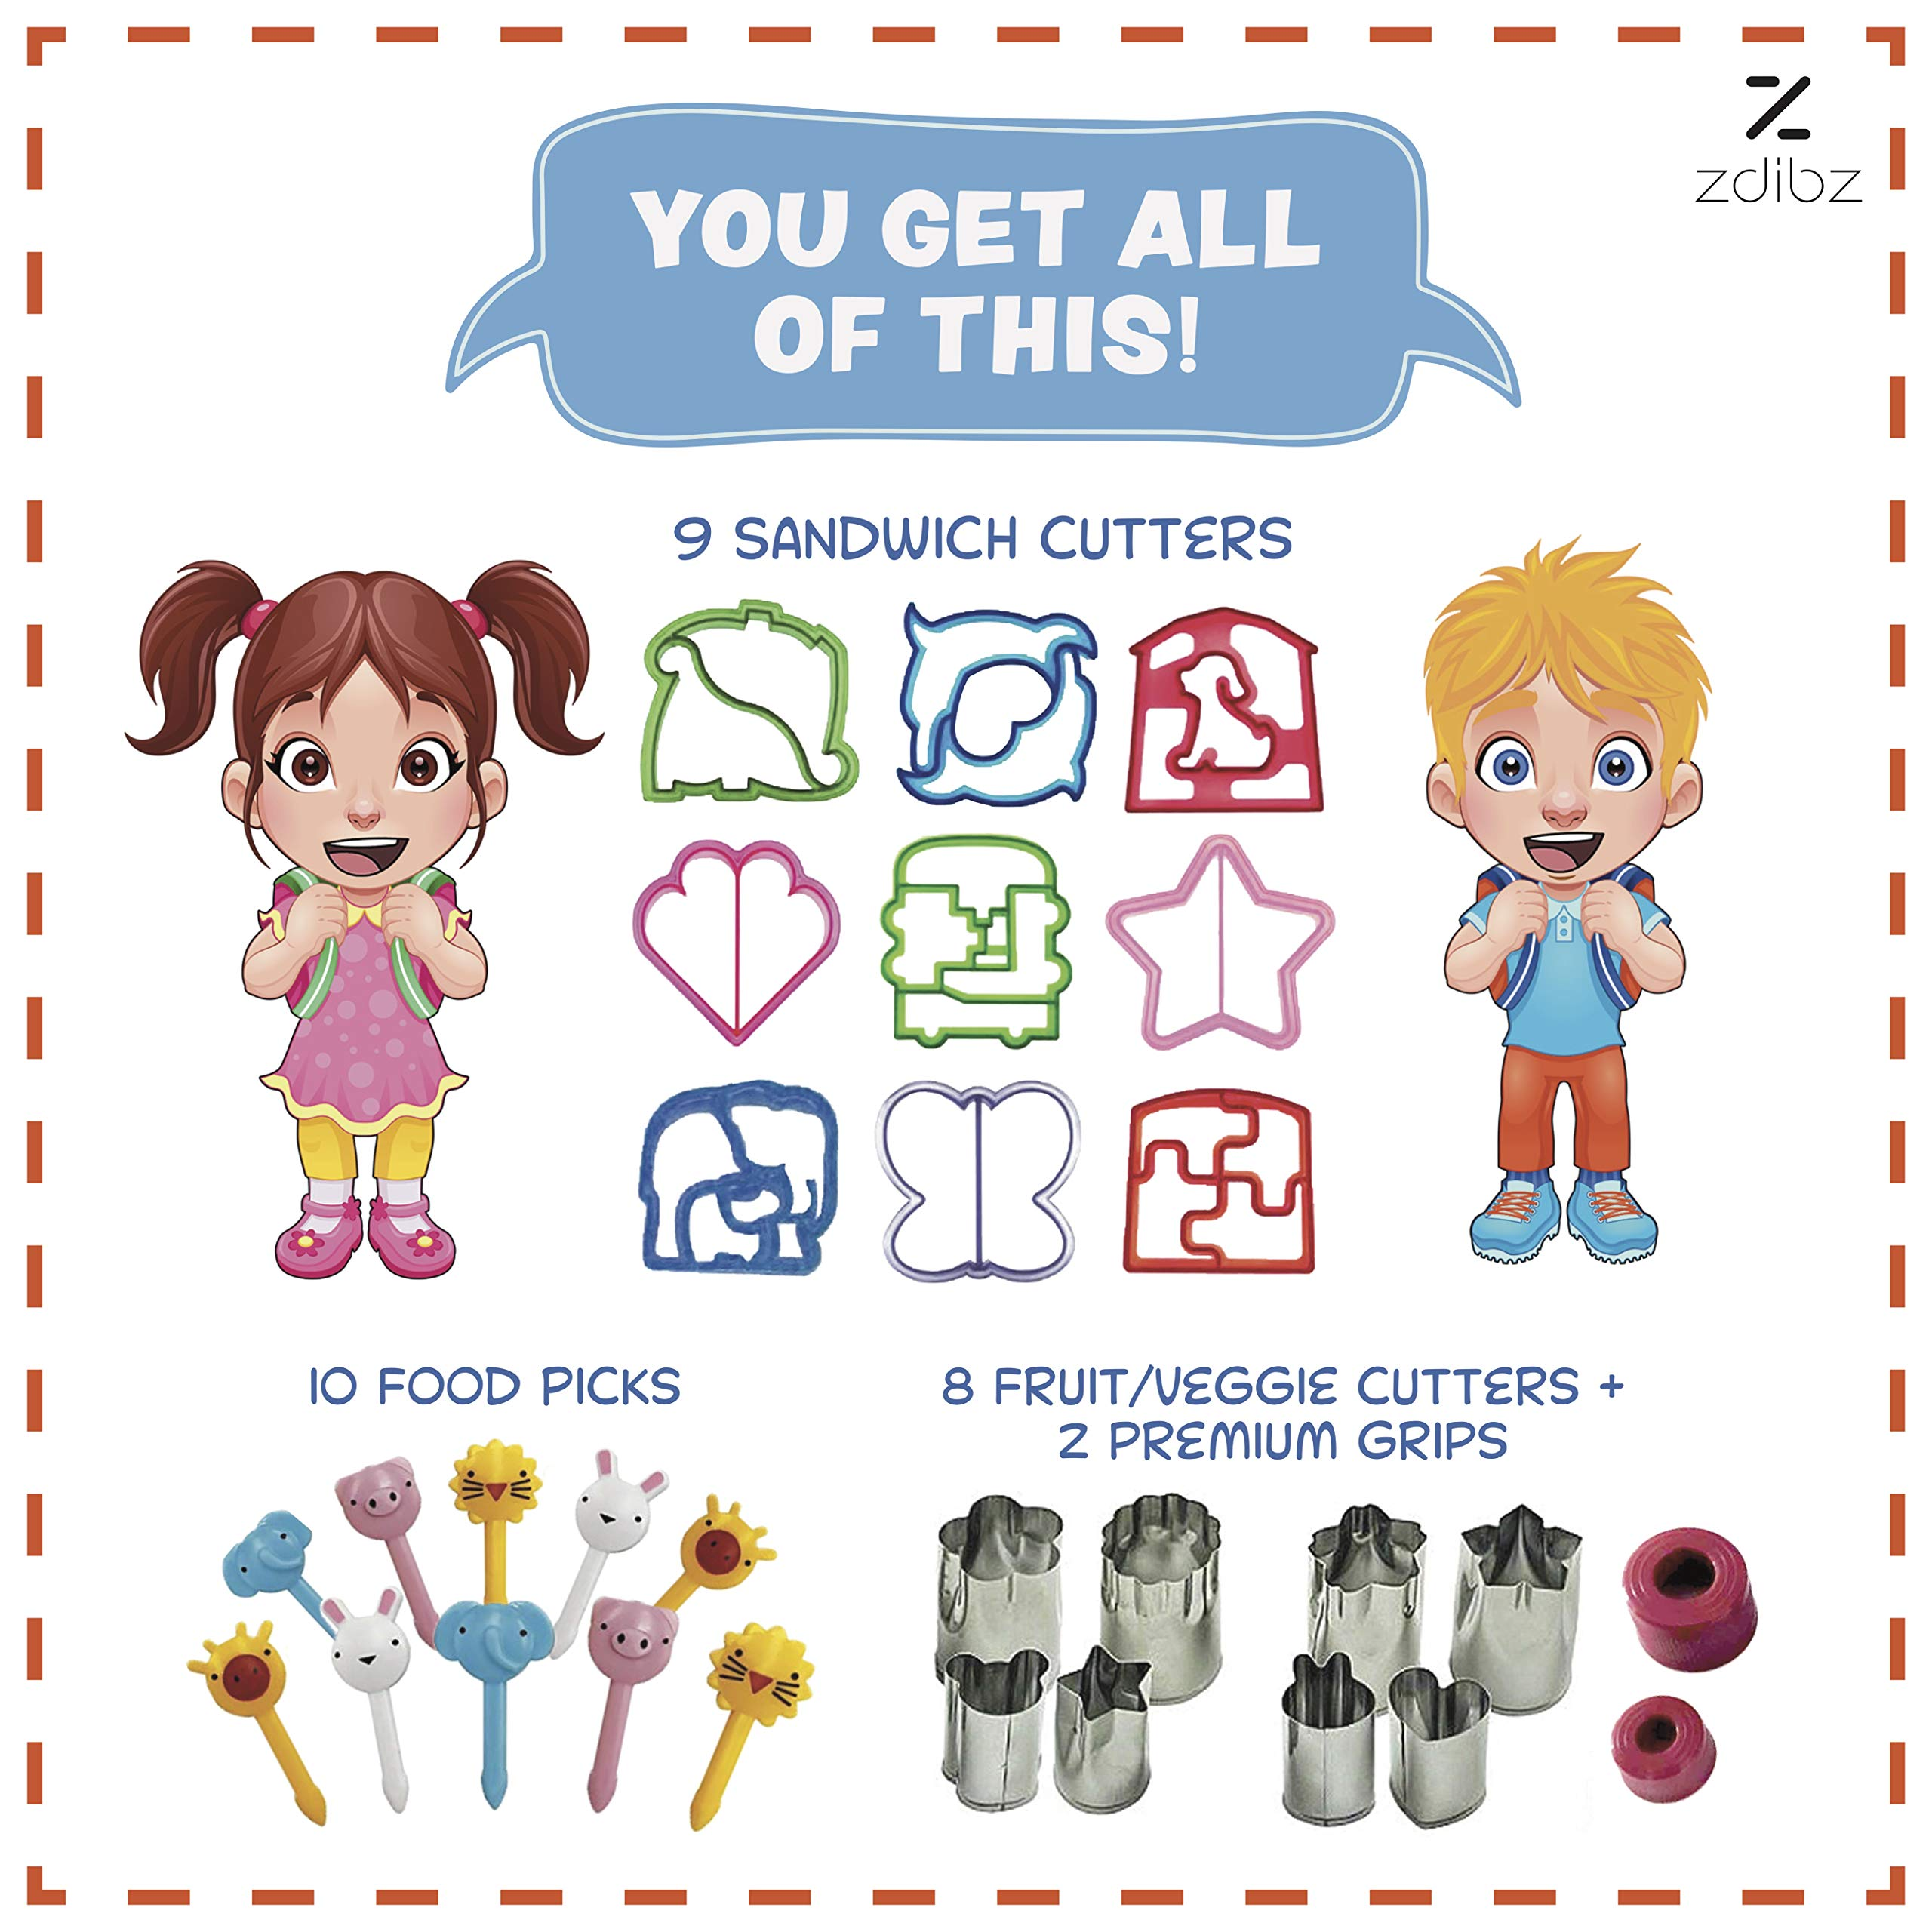 NEW Premium/Sturdy 29 Pc BPA Free Sandwich Cutter Set for Kids - Fun Bento Box Lunch Set For Boys, Girls & Toddlers - 8 Stainless Steel Fruit/Vegetable & Cookie Cutters - FREE 10 Food/Fruit Picks by zdibz (Image #2)